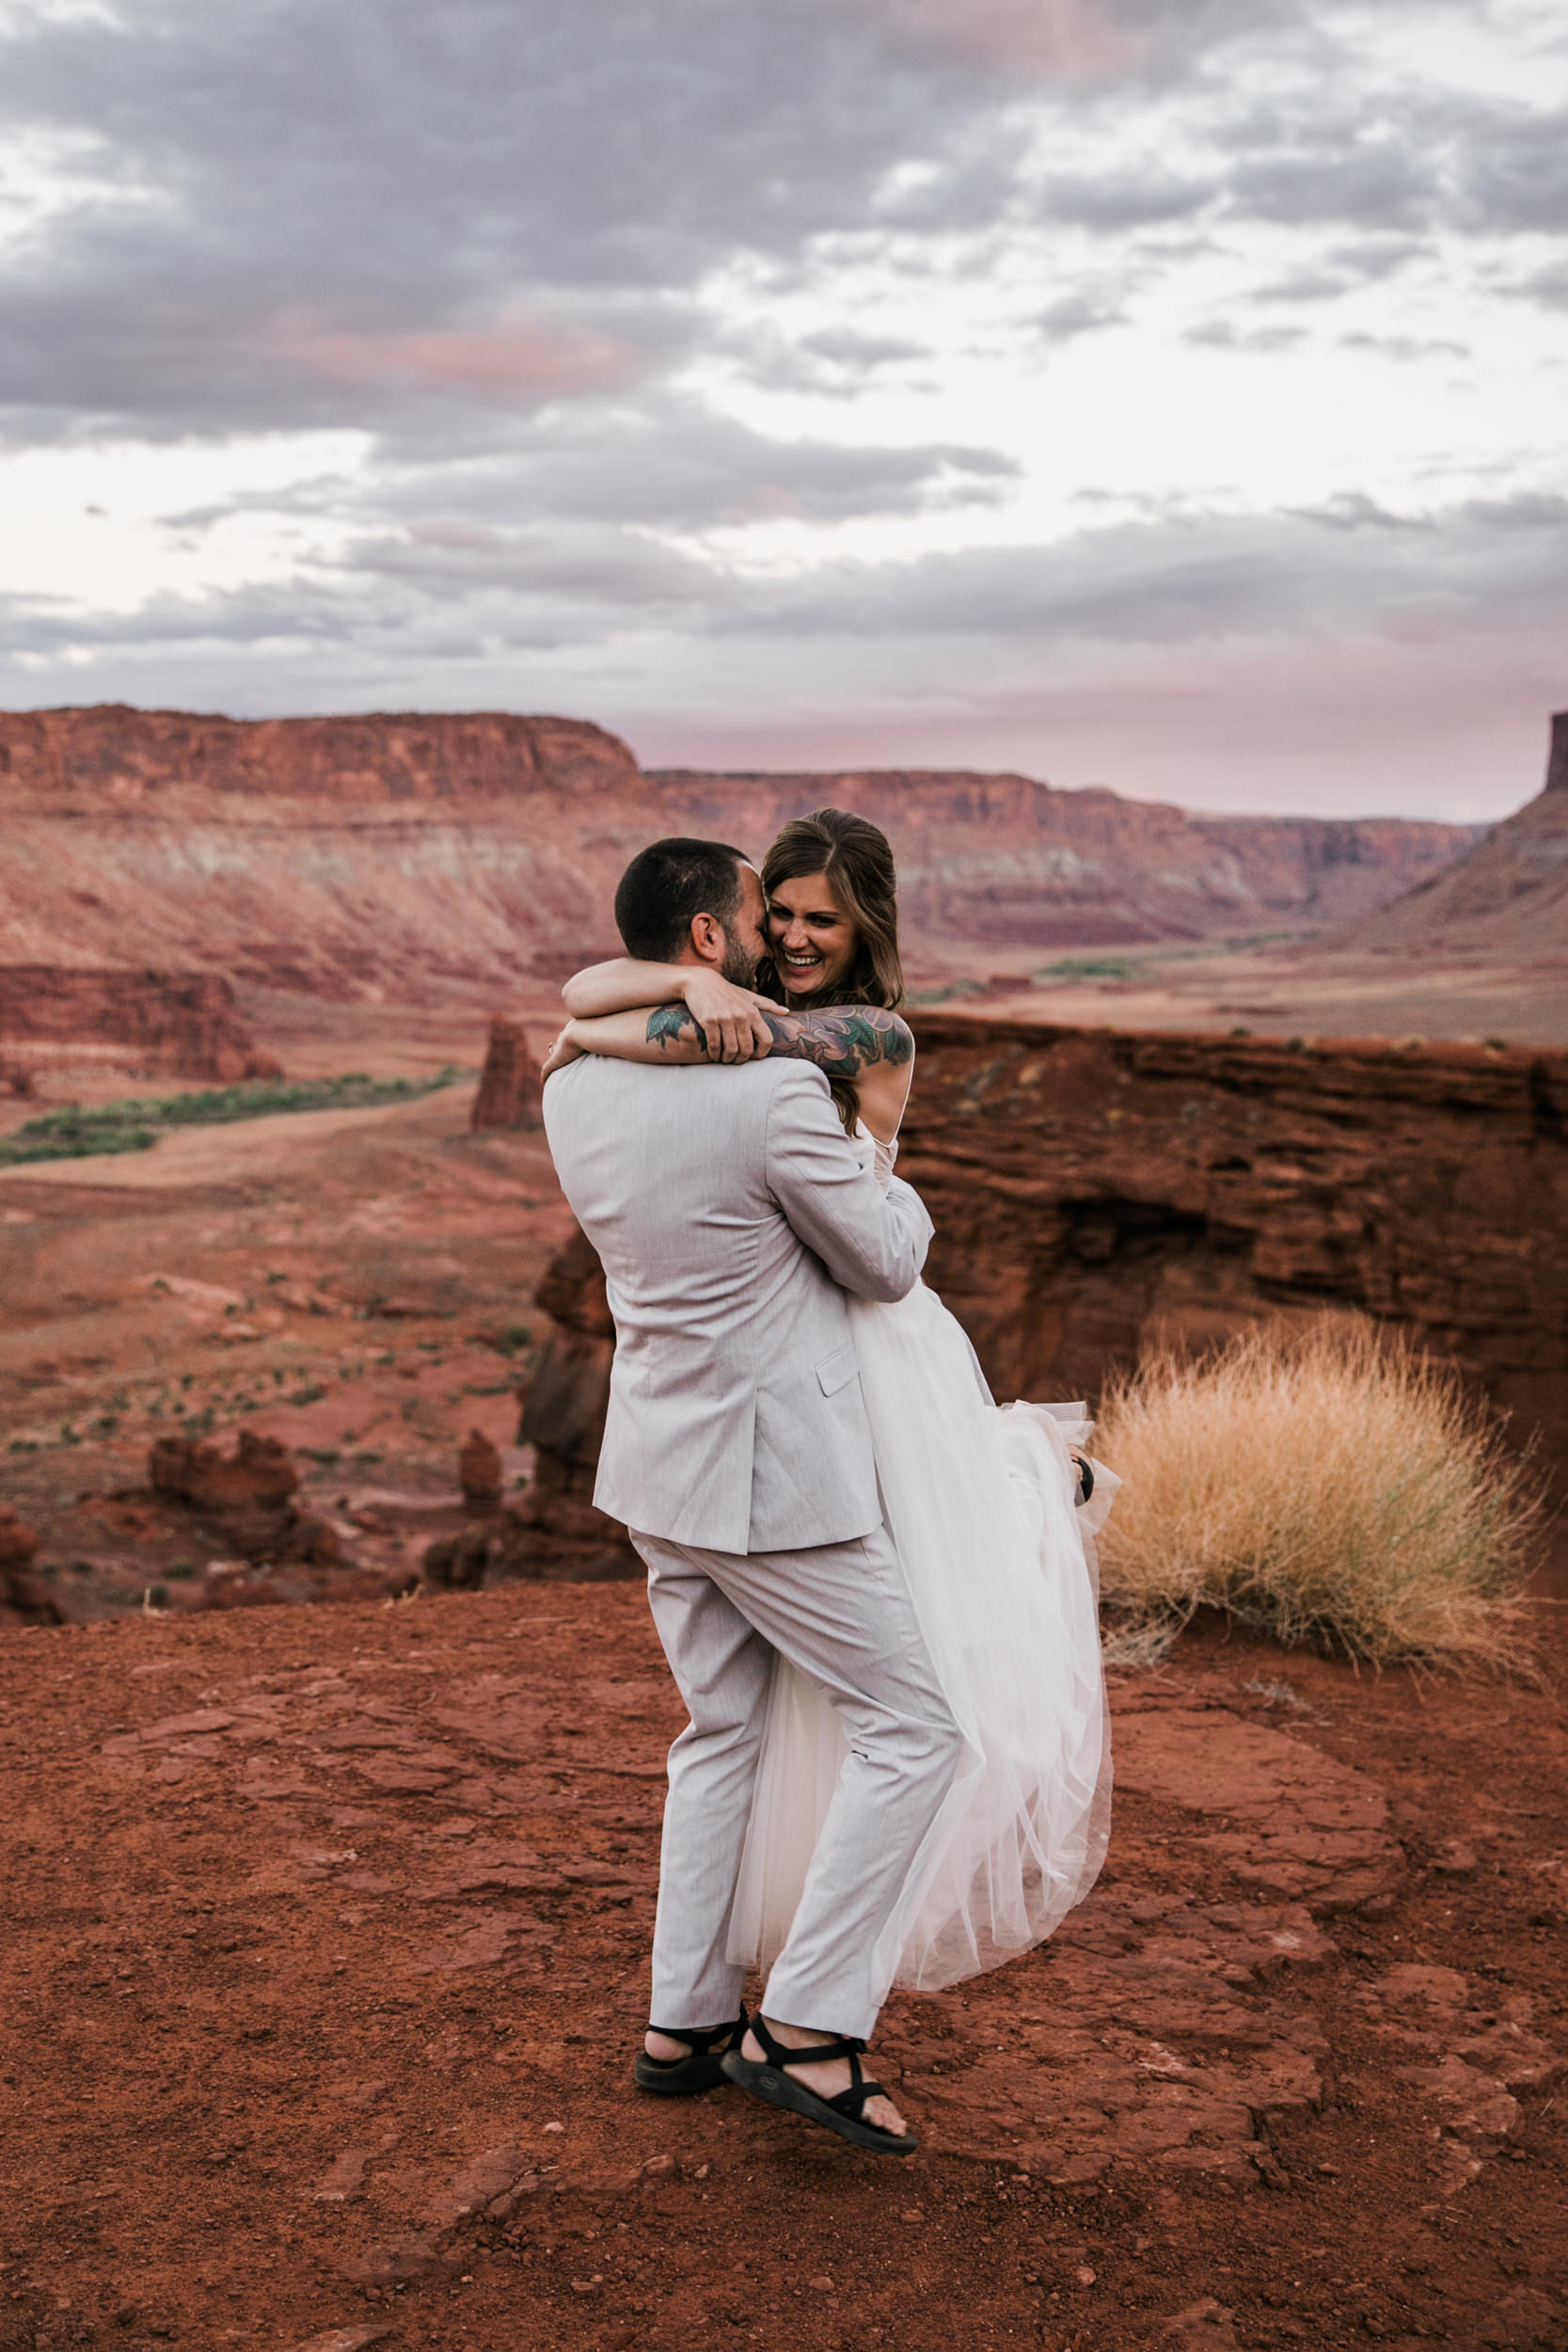 arches national park elopement | rainy wedding day | jeeping wedding in moab utah | the hearnes adventure photography